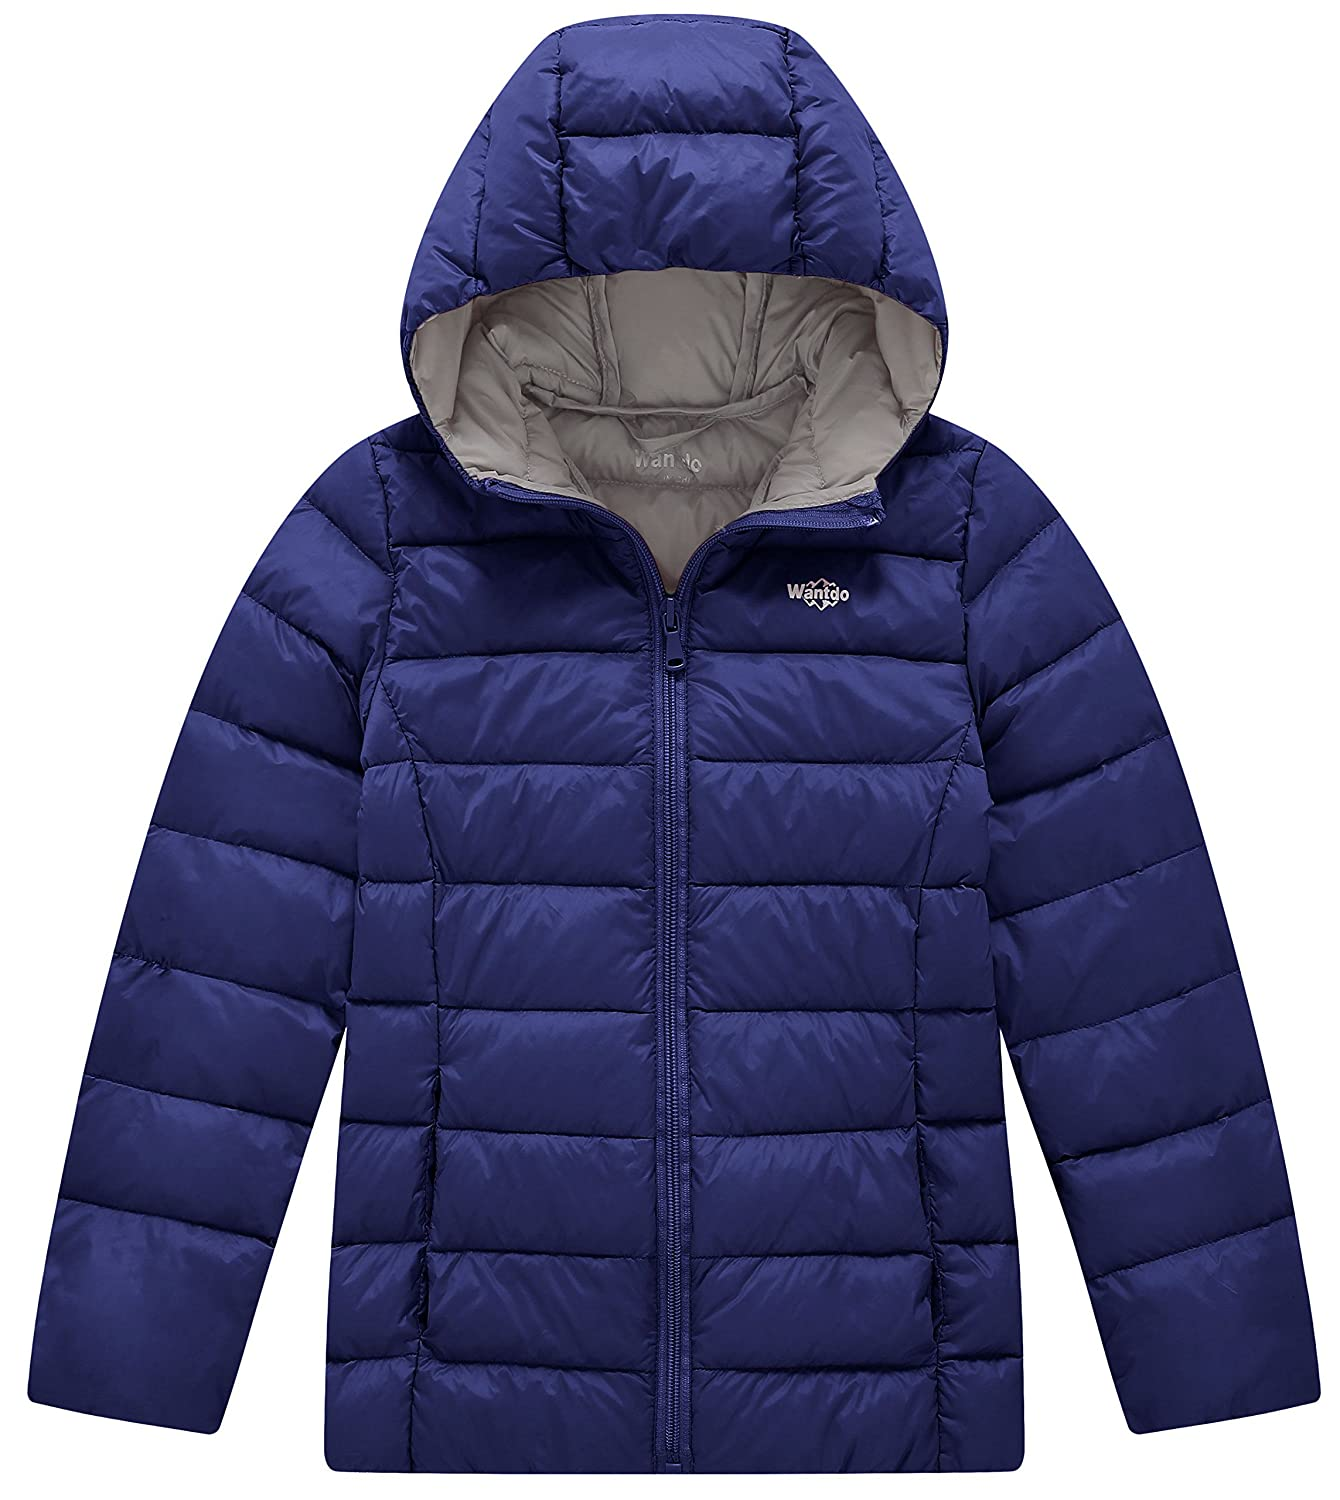 Wantdo Girl's Hooded Down Jacket Lightweight Packable Down Coat